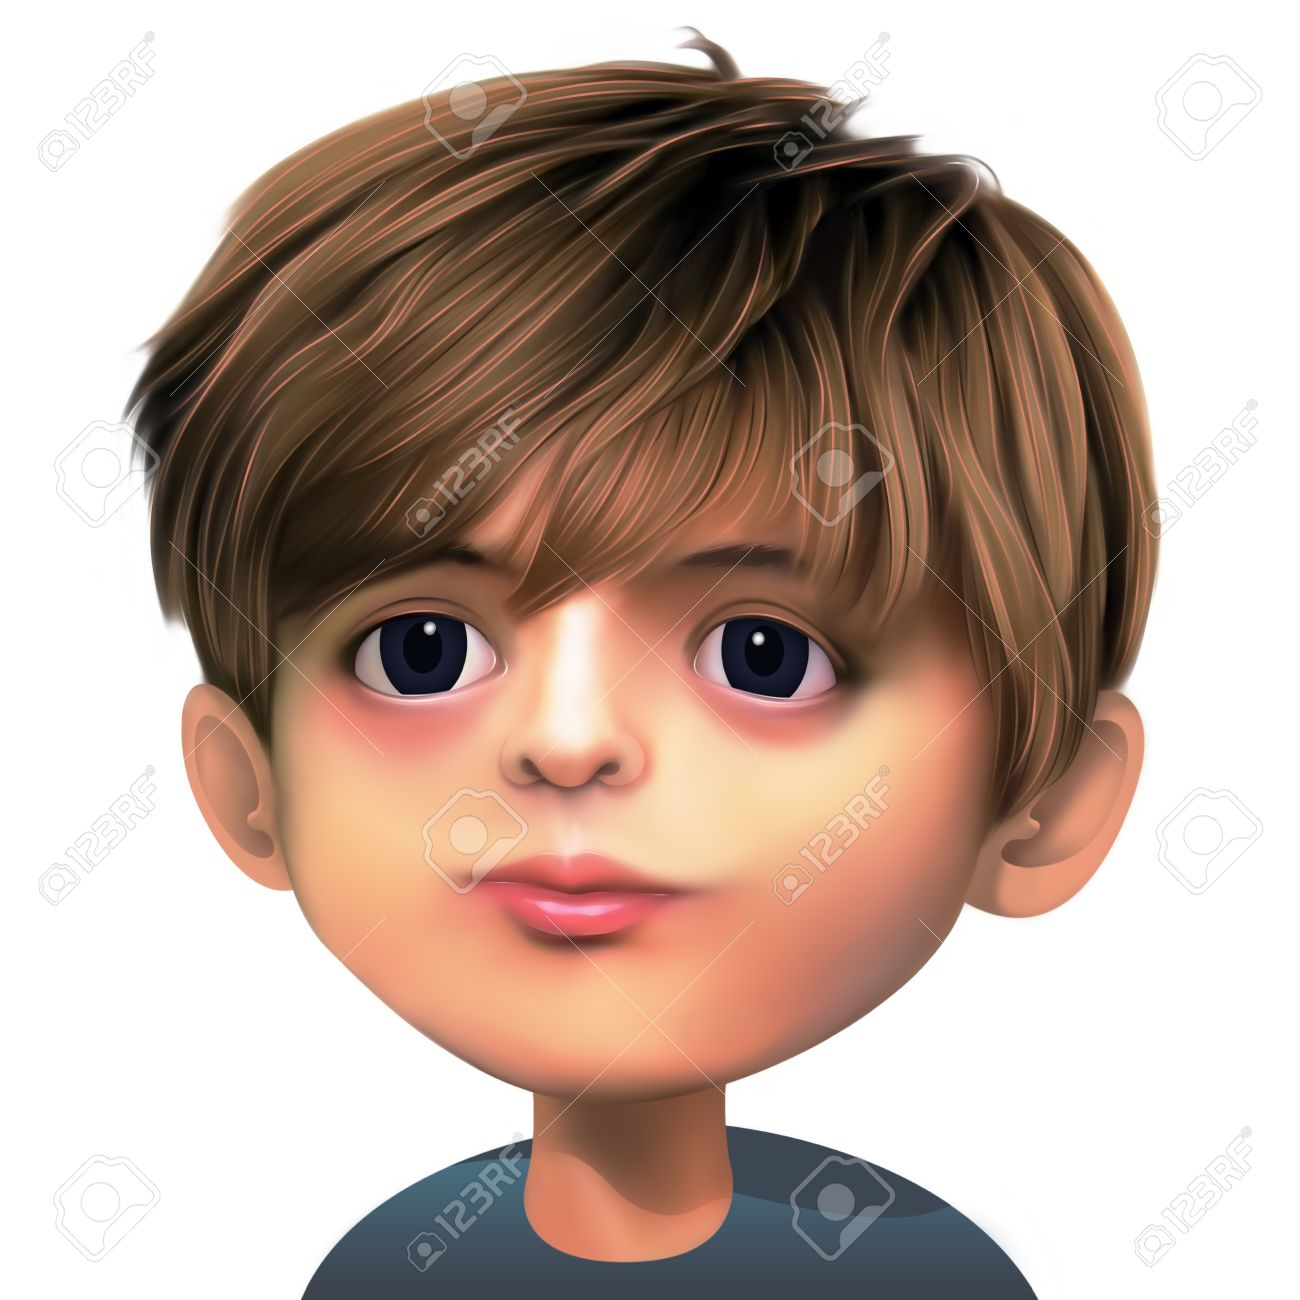 Boy With Brown Hair And Dark Eyes